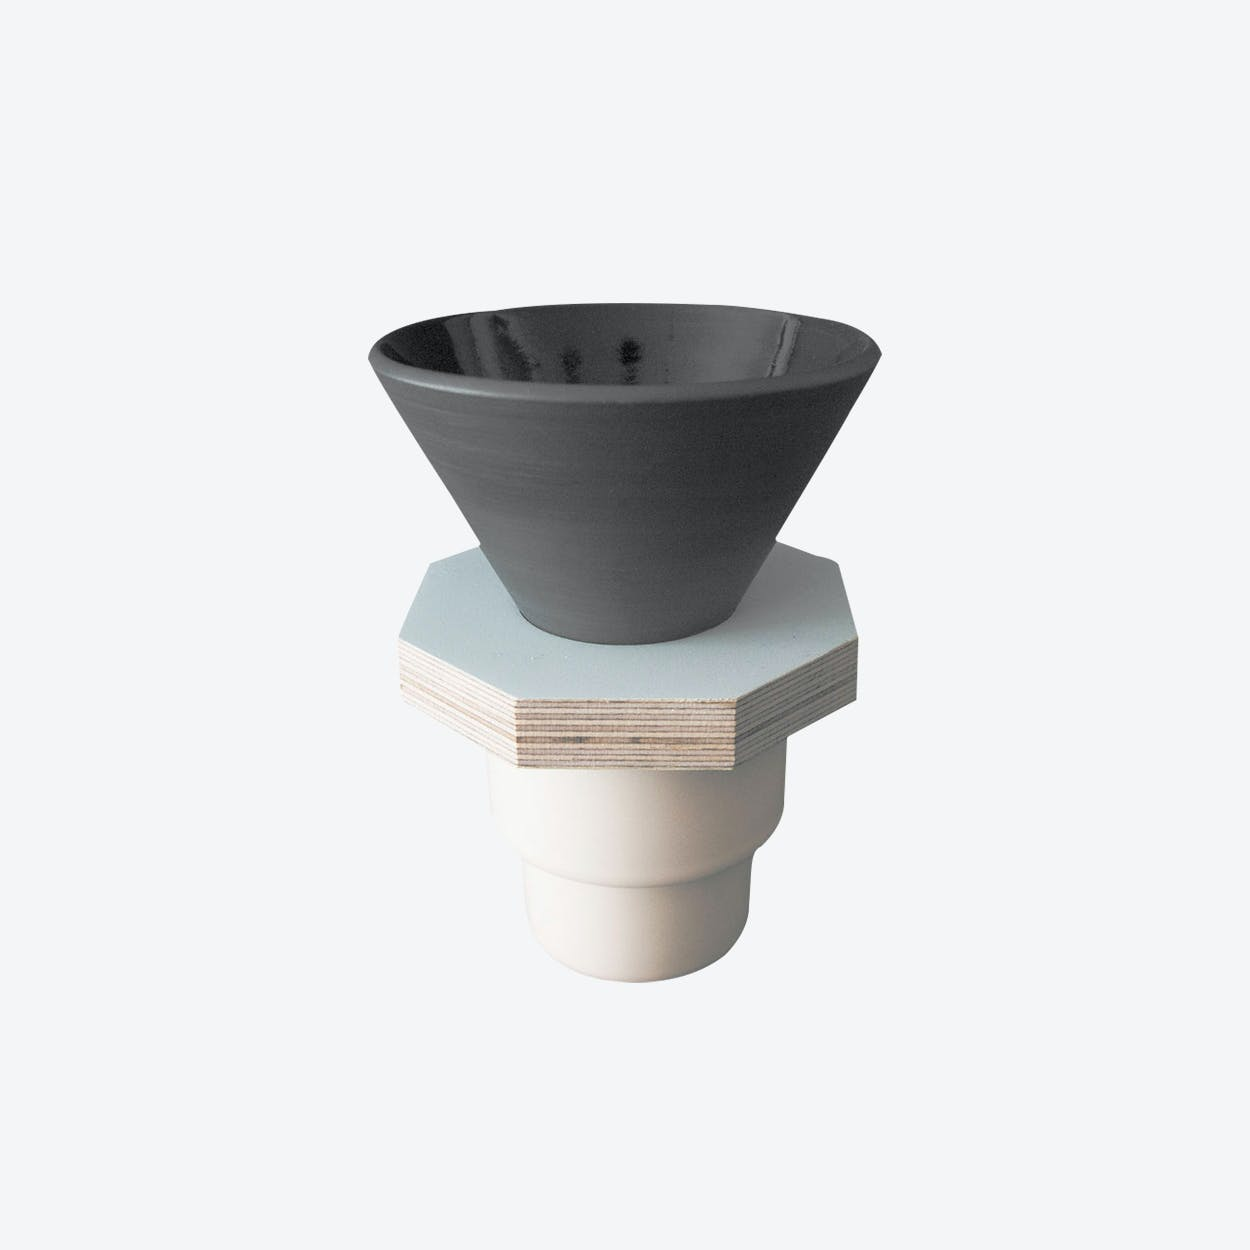 Ceramic Dripper in Dark Gray and  Light Blue Plywood